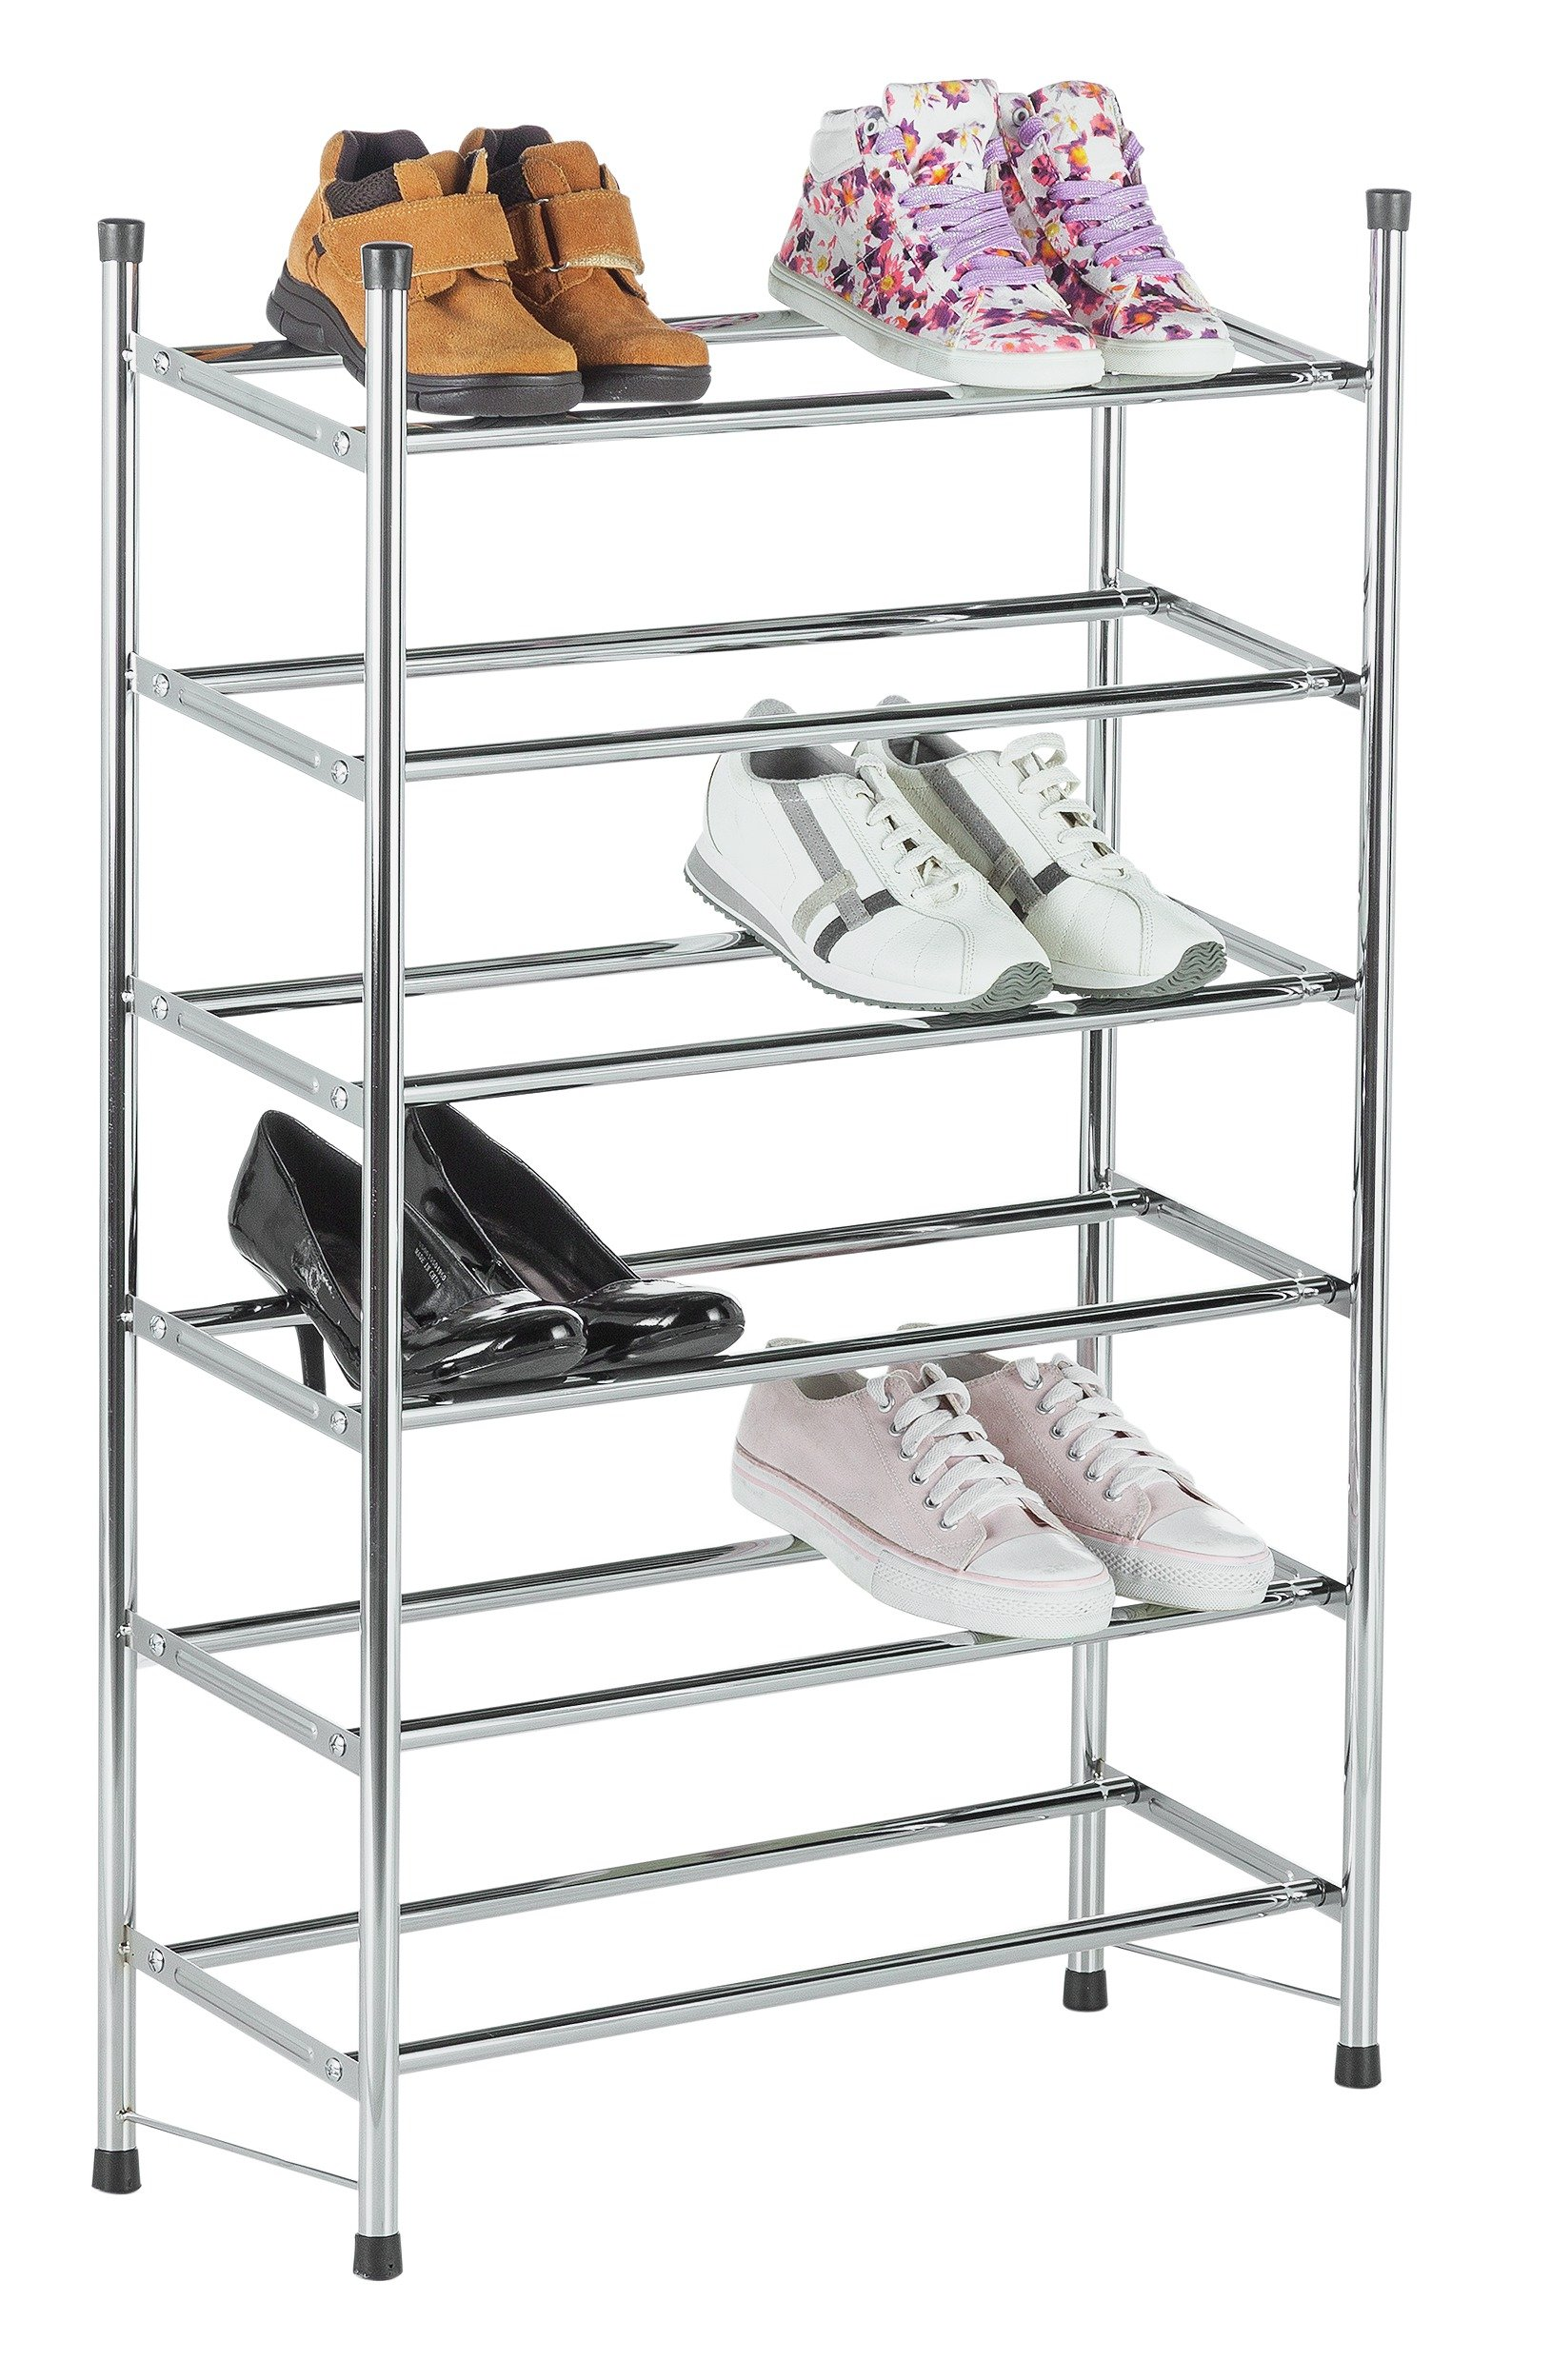 Argos Home 6 Tier Extendable Shoe Rack - Chrome